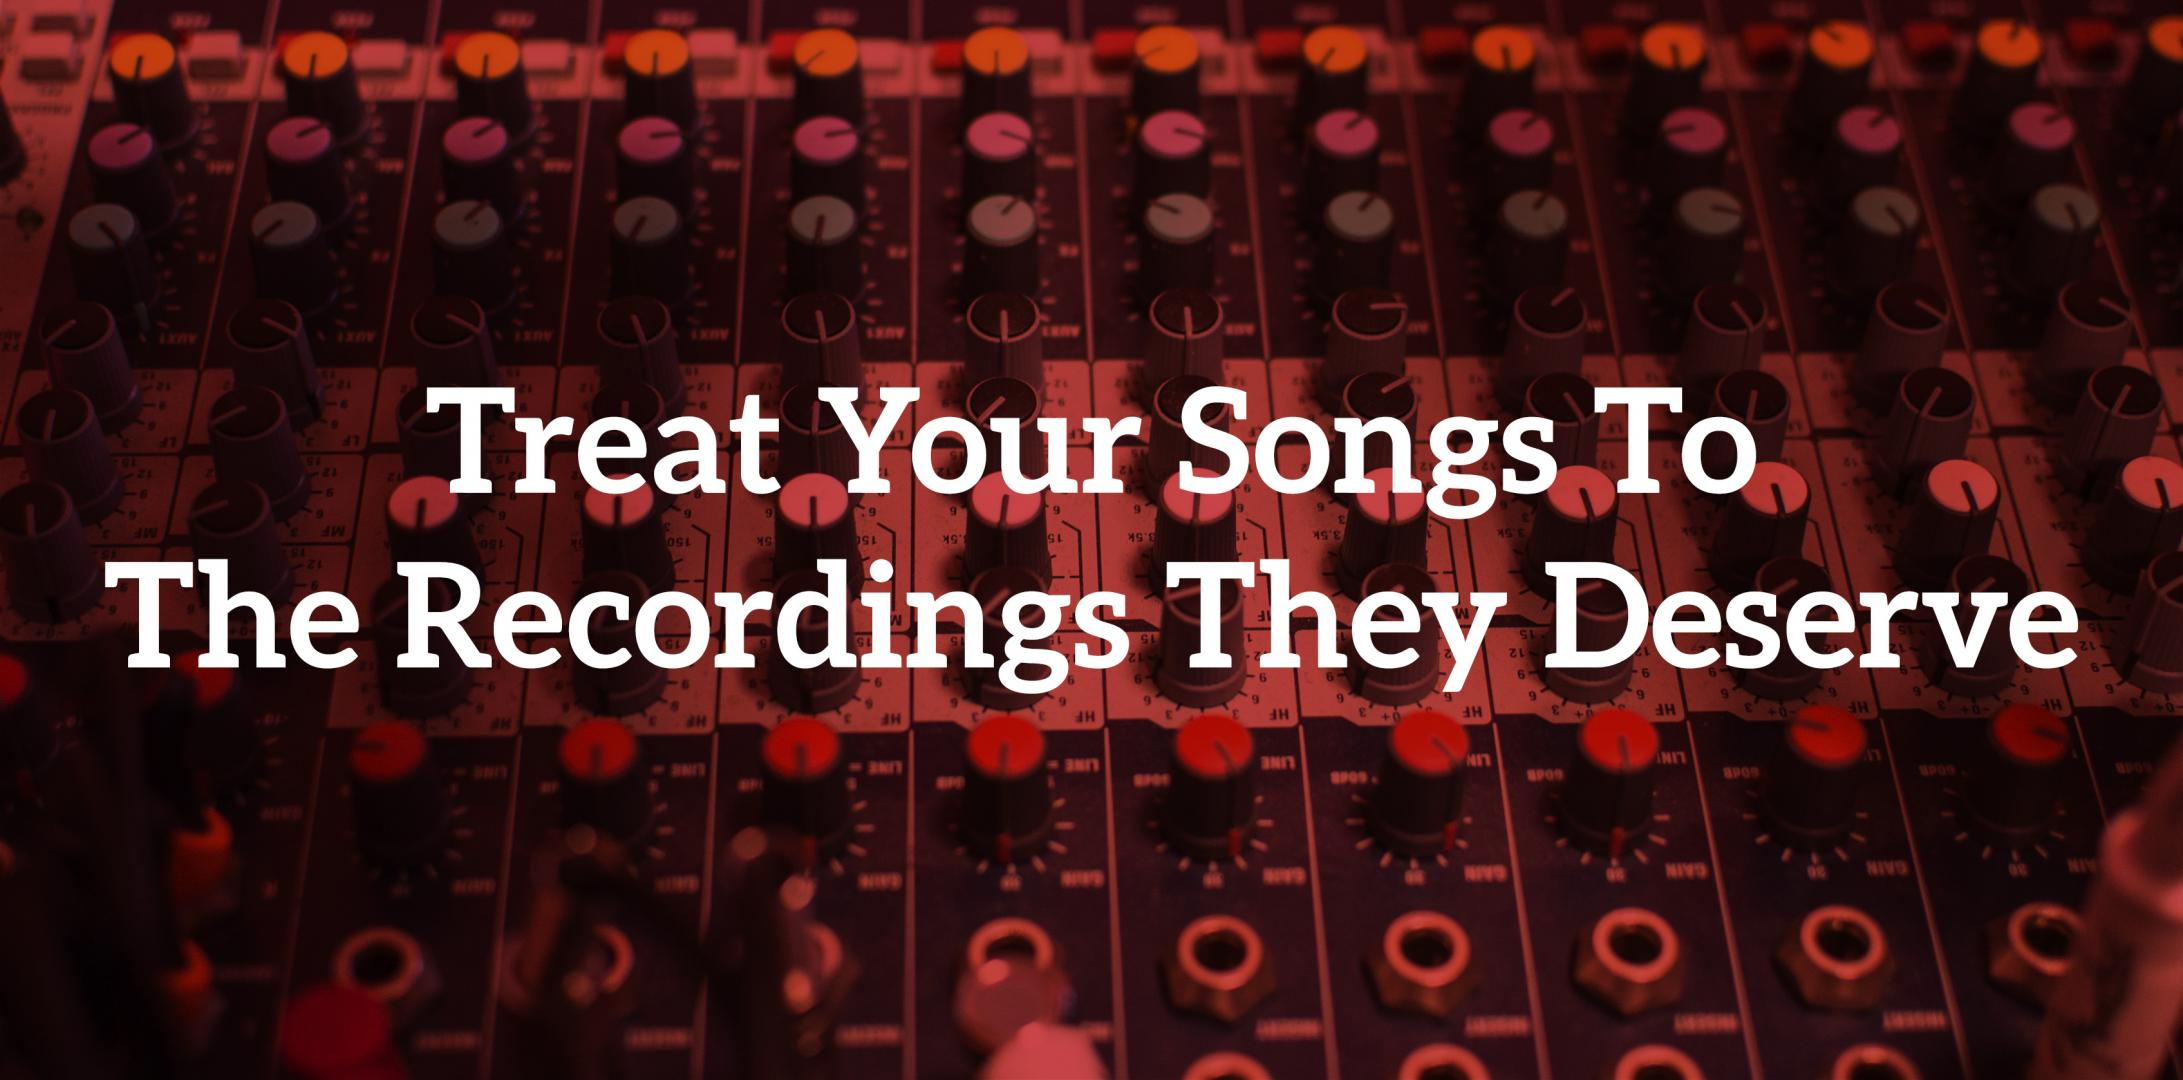 12 Ways: Treat Your Songs To The Recordings They Deserve